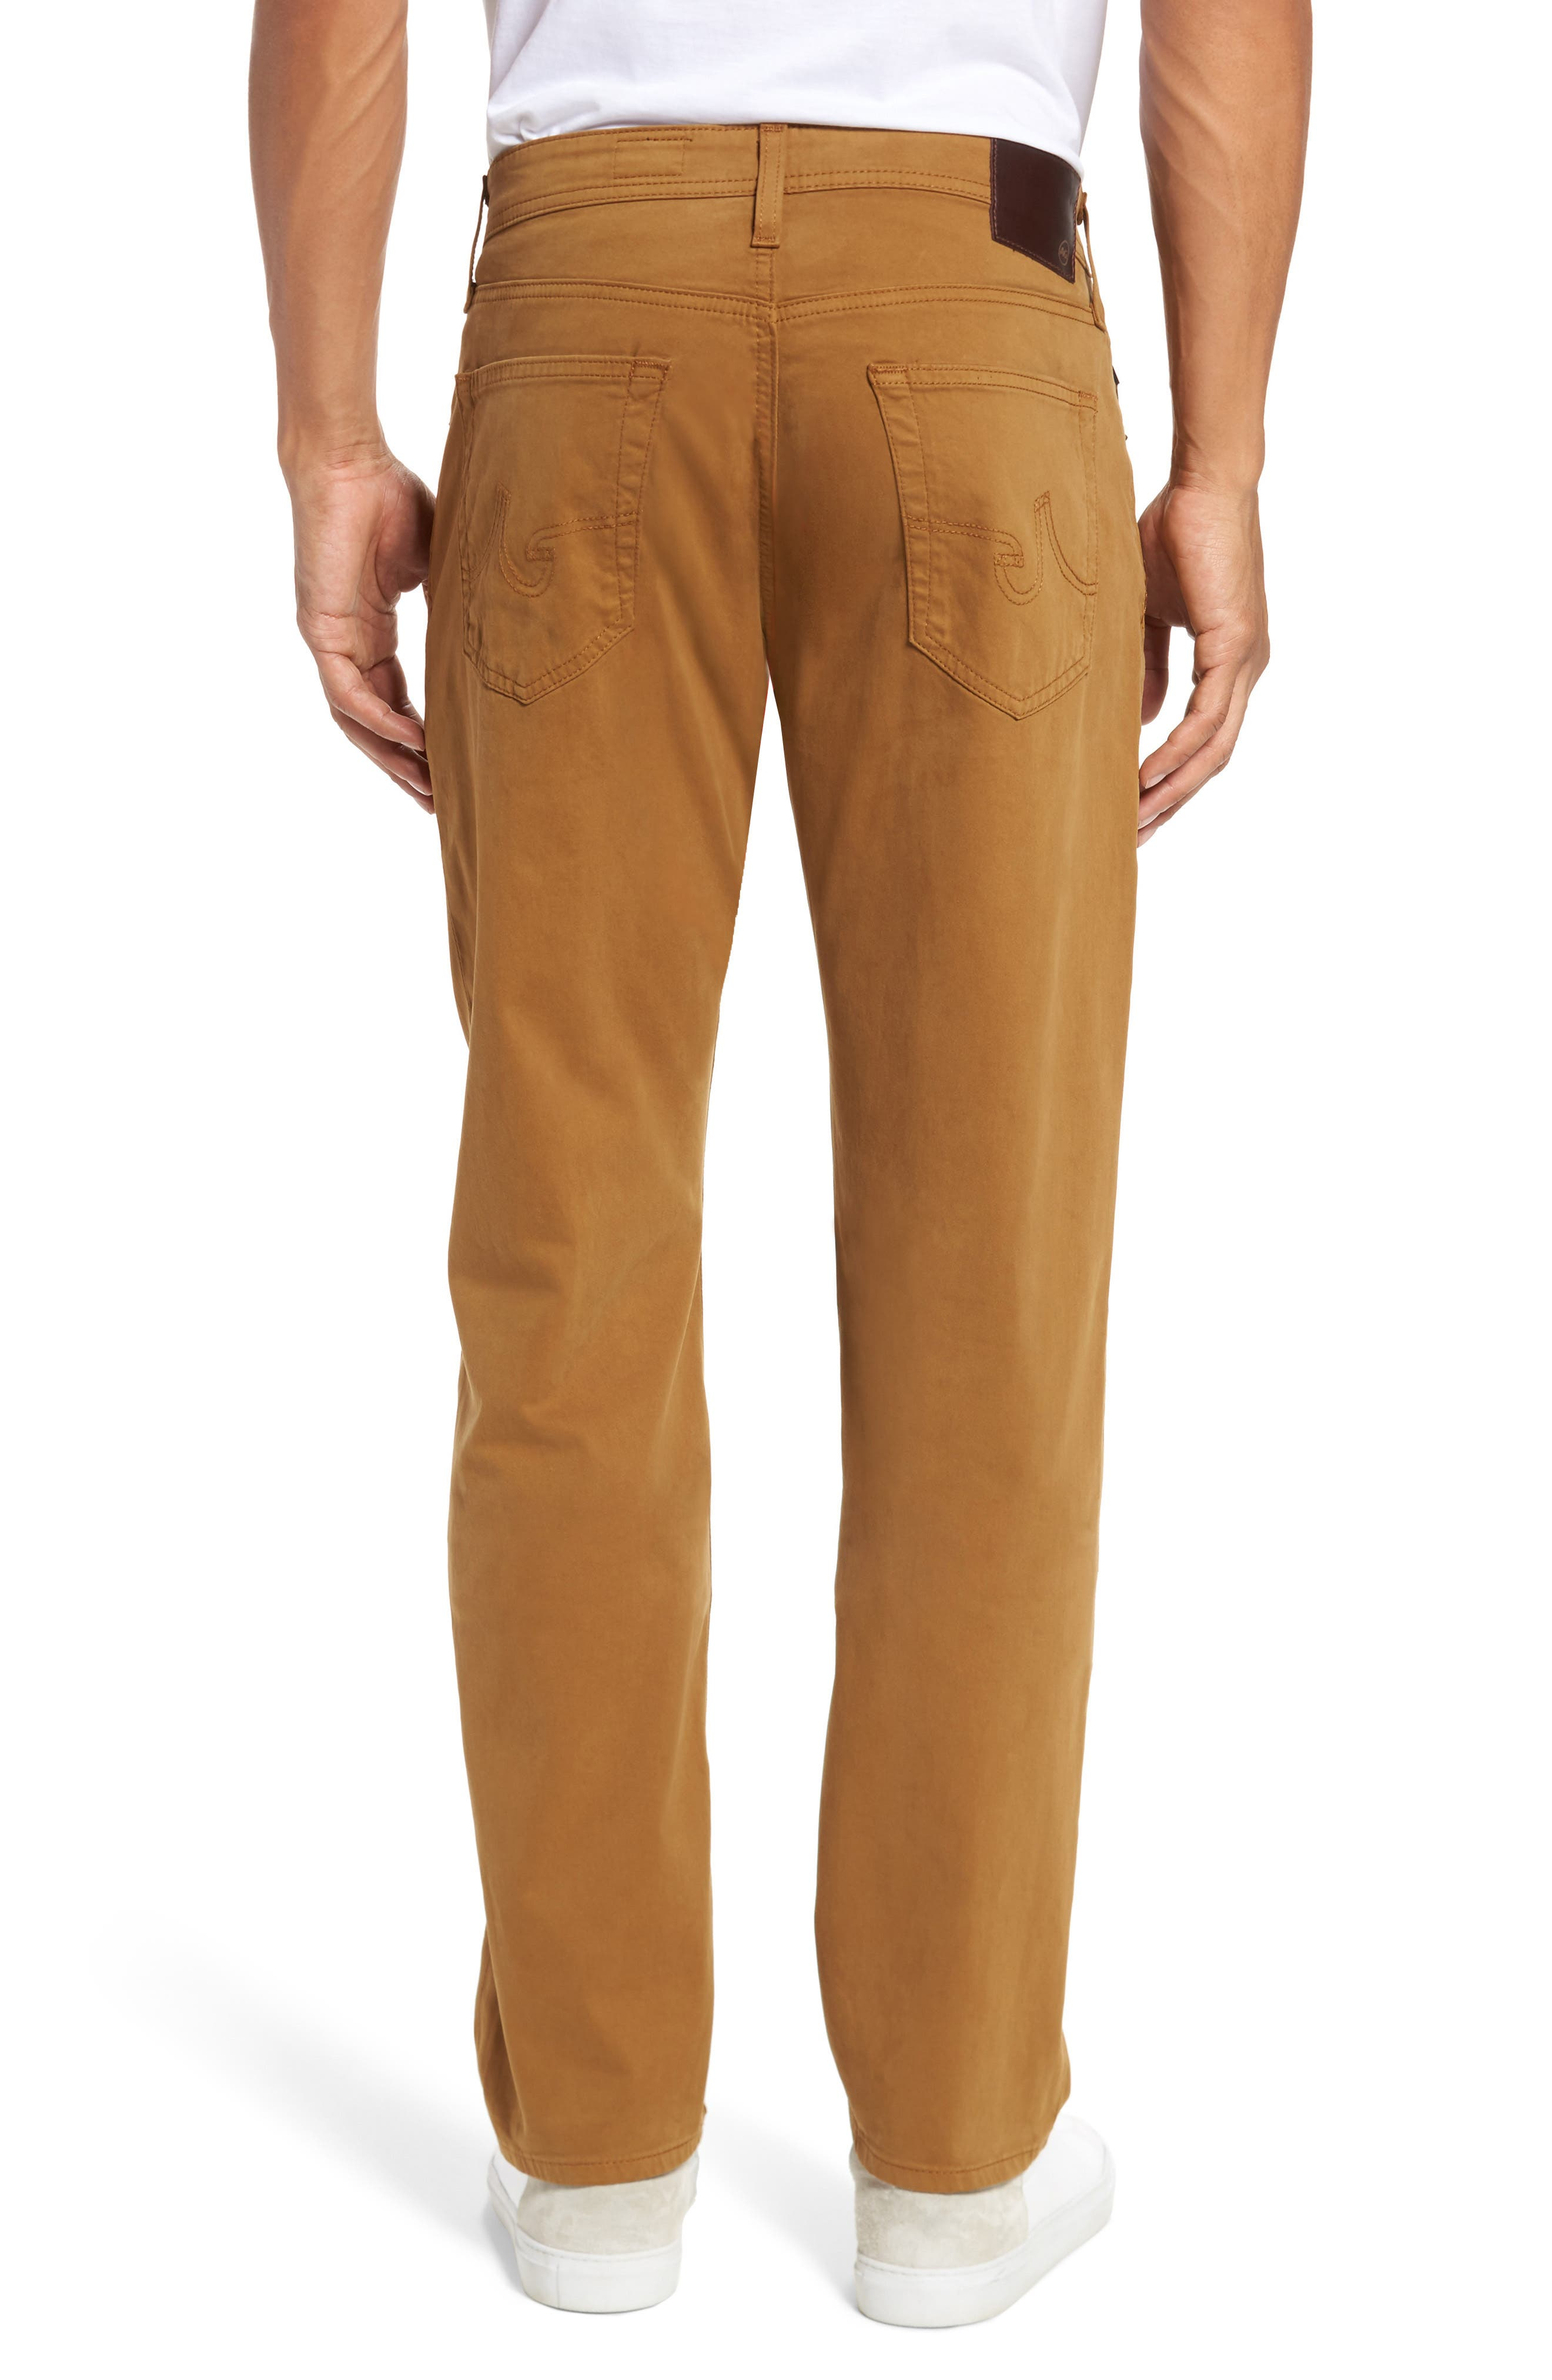 Graduate SUD Slim Straight Leg Pants,                             Alternate thumbnail 2, color,                             Burnt Saffron (Bfn)